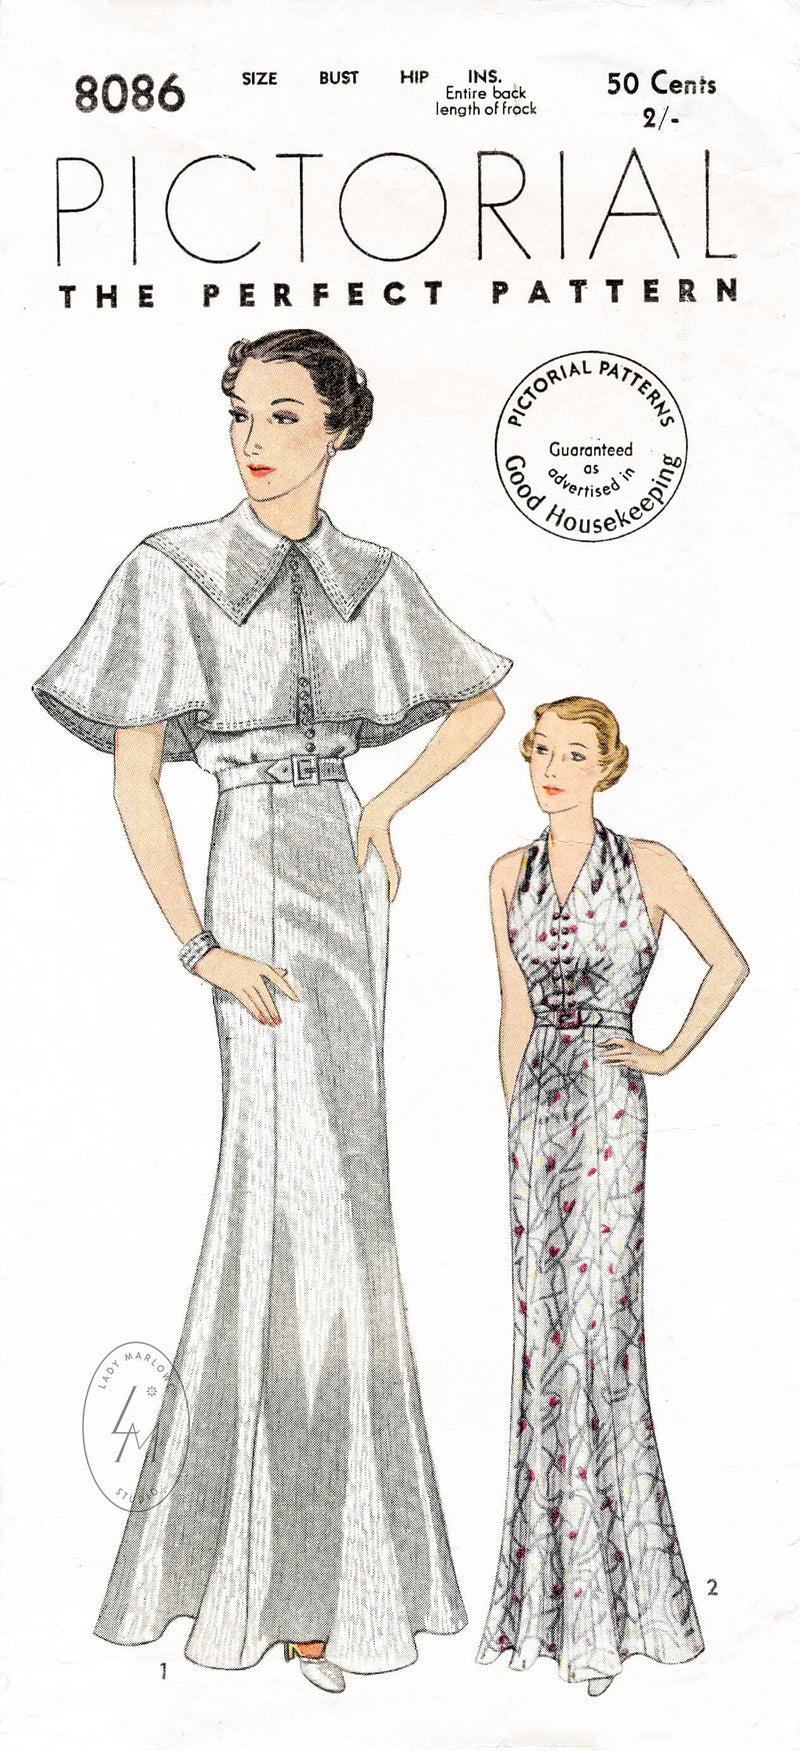 Pictorial Review 8086 1930s evening gown pattern